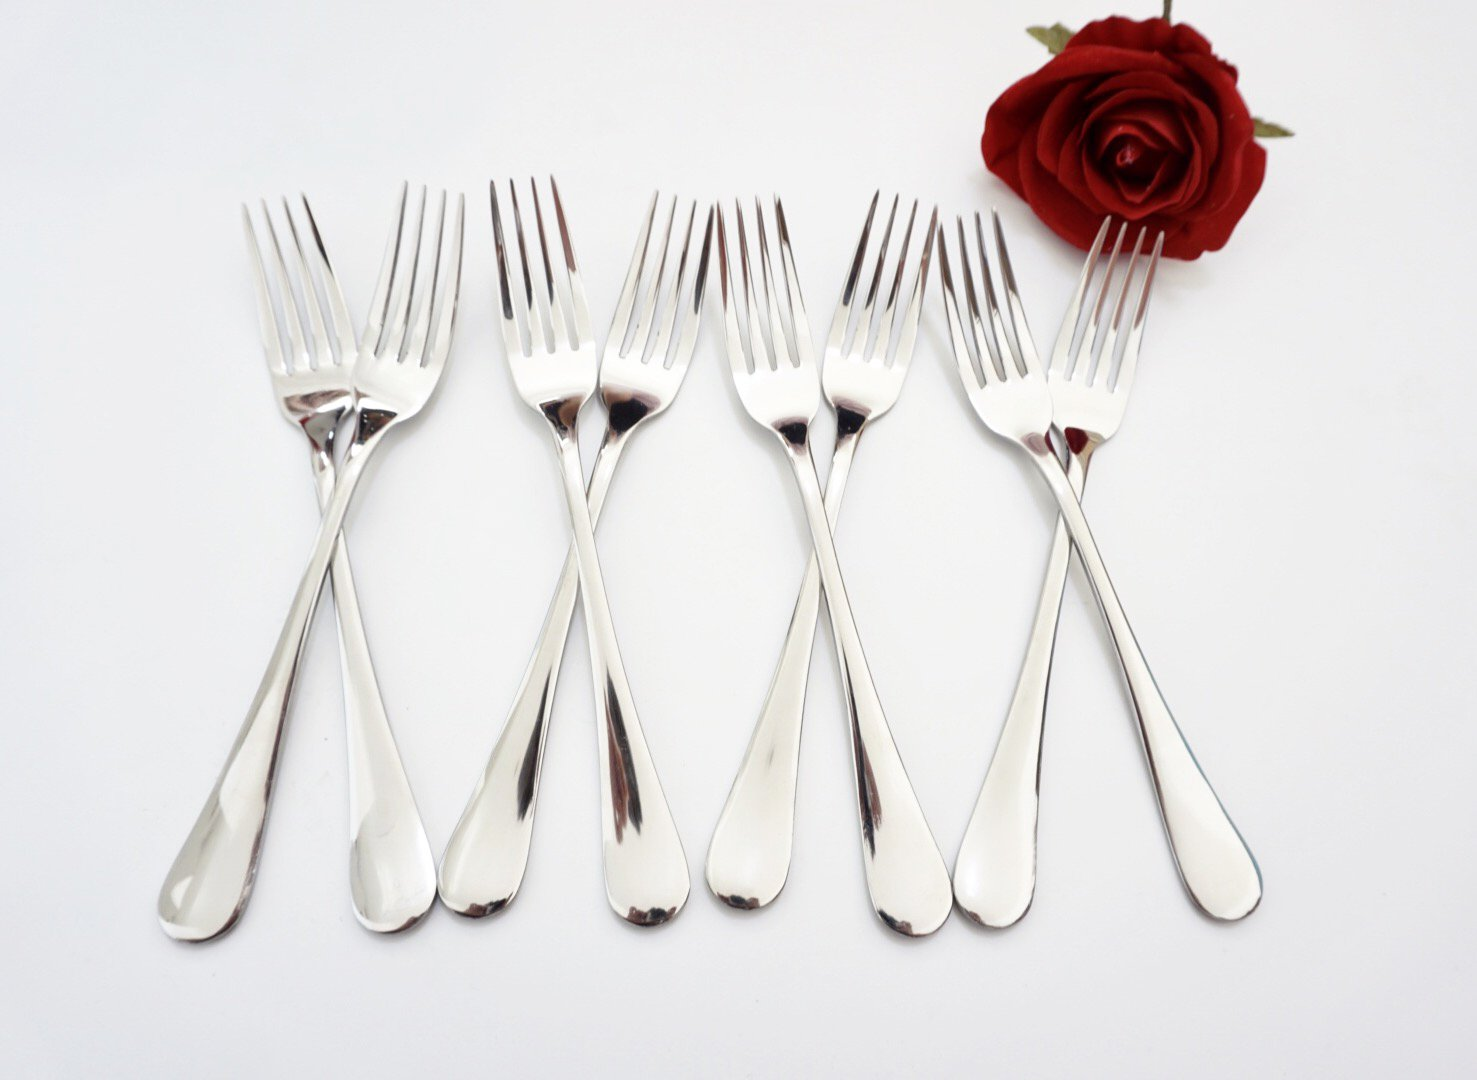 Mirror Polished WANGDA 8 Pieces Dinner Forks Set Heavy Duty Stainless Steel Flatware Sets